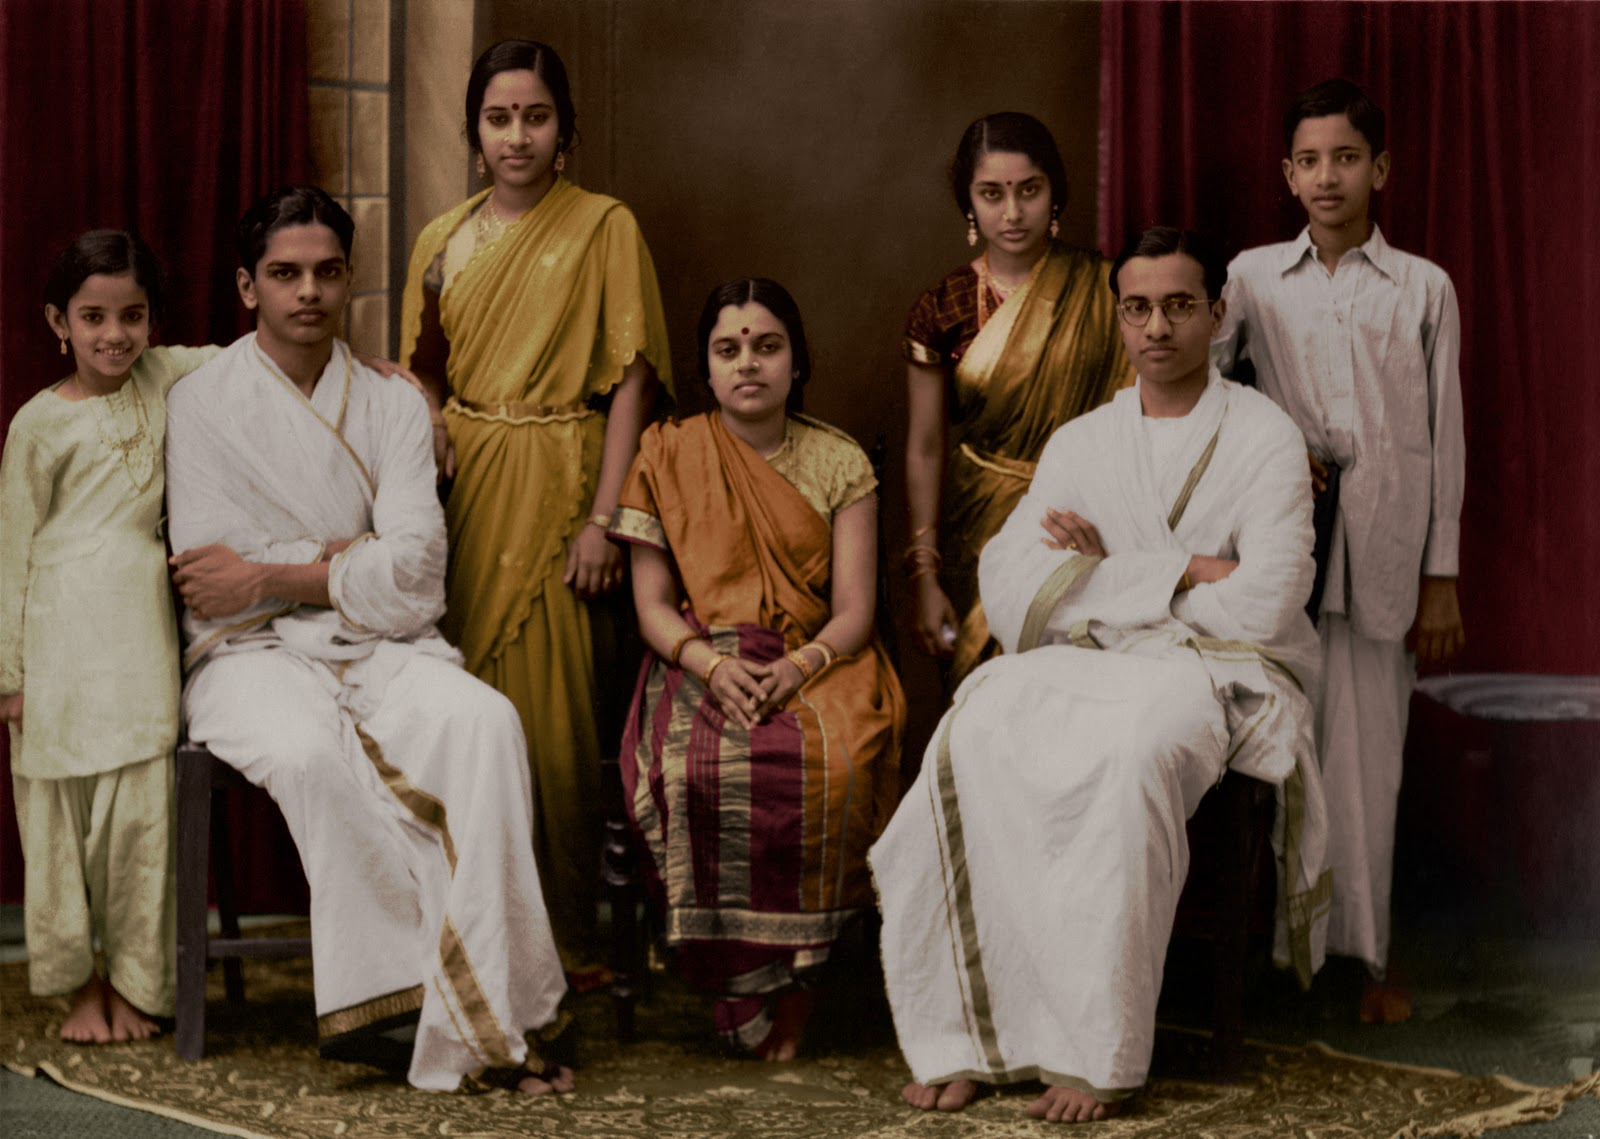 The Families Post Vintage Indian Clothing